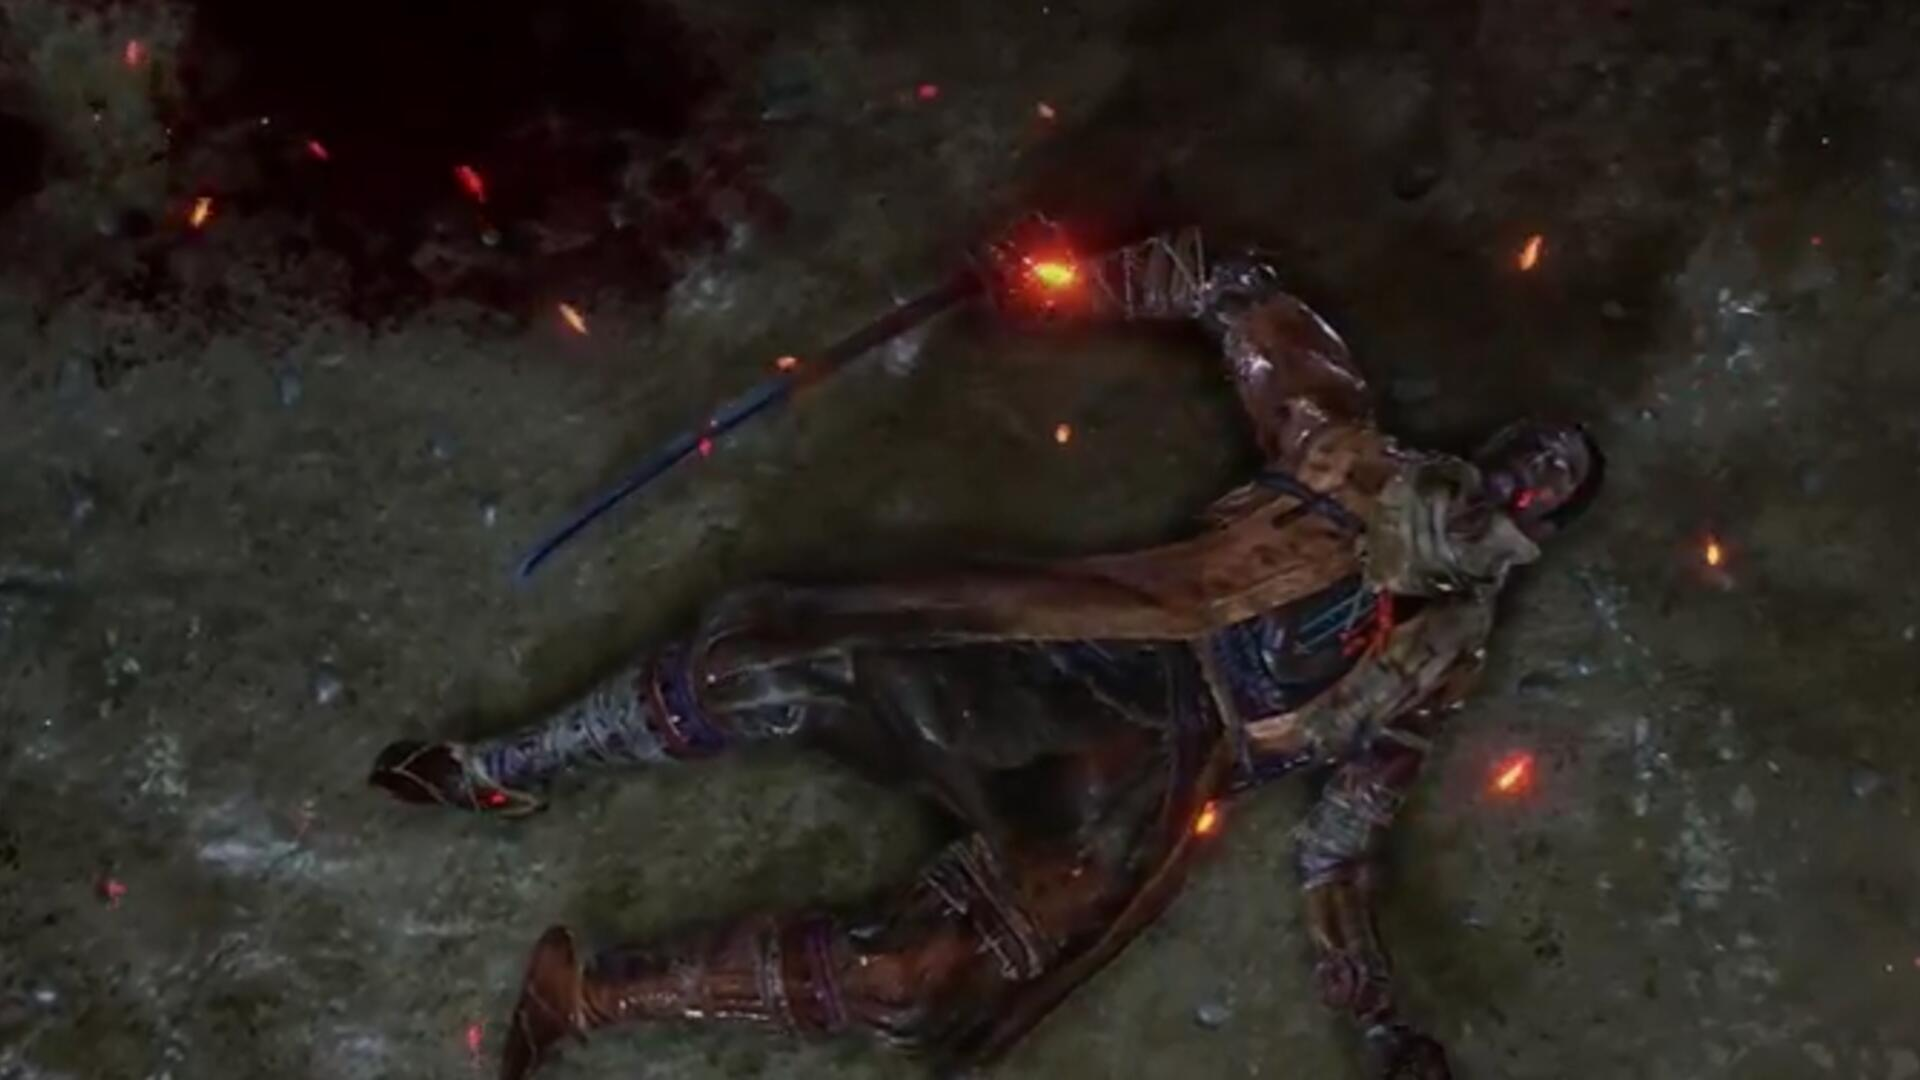 Sekiro: Shadows Die Twice is From Software's Samurai Action Game, Coming in 2019